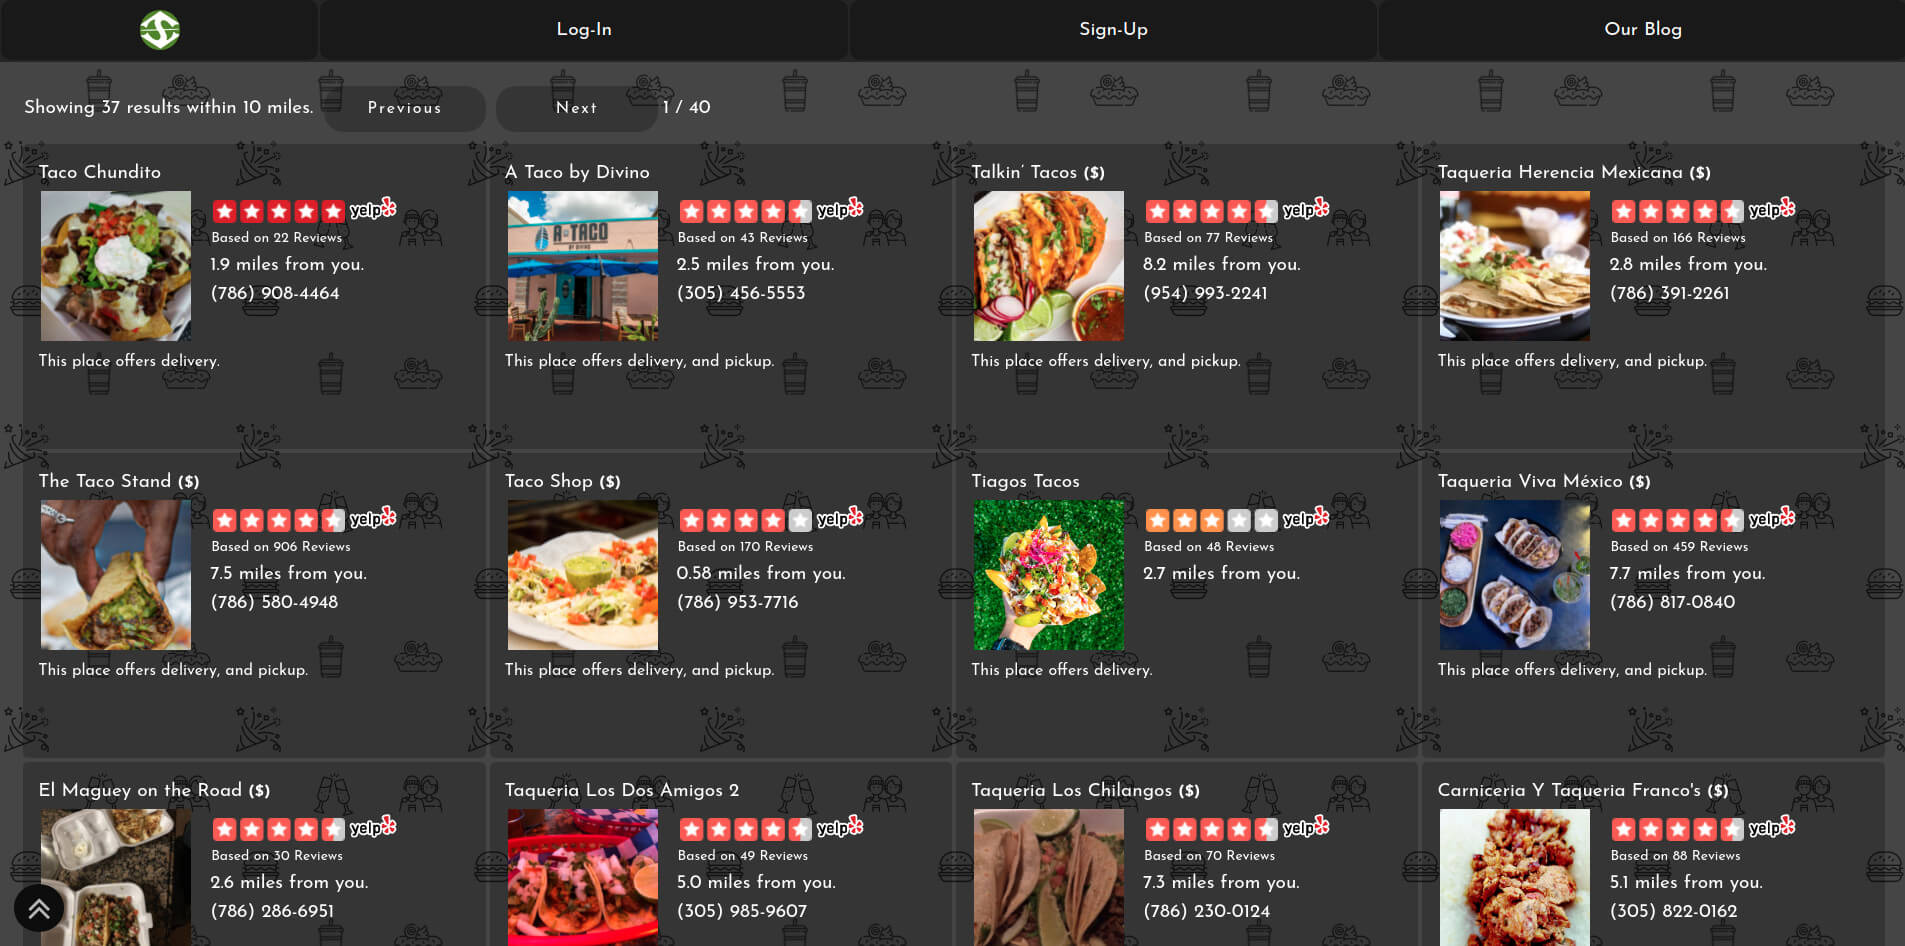 Image of SpotBie UI listing the best places to eat tacos near the user.